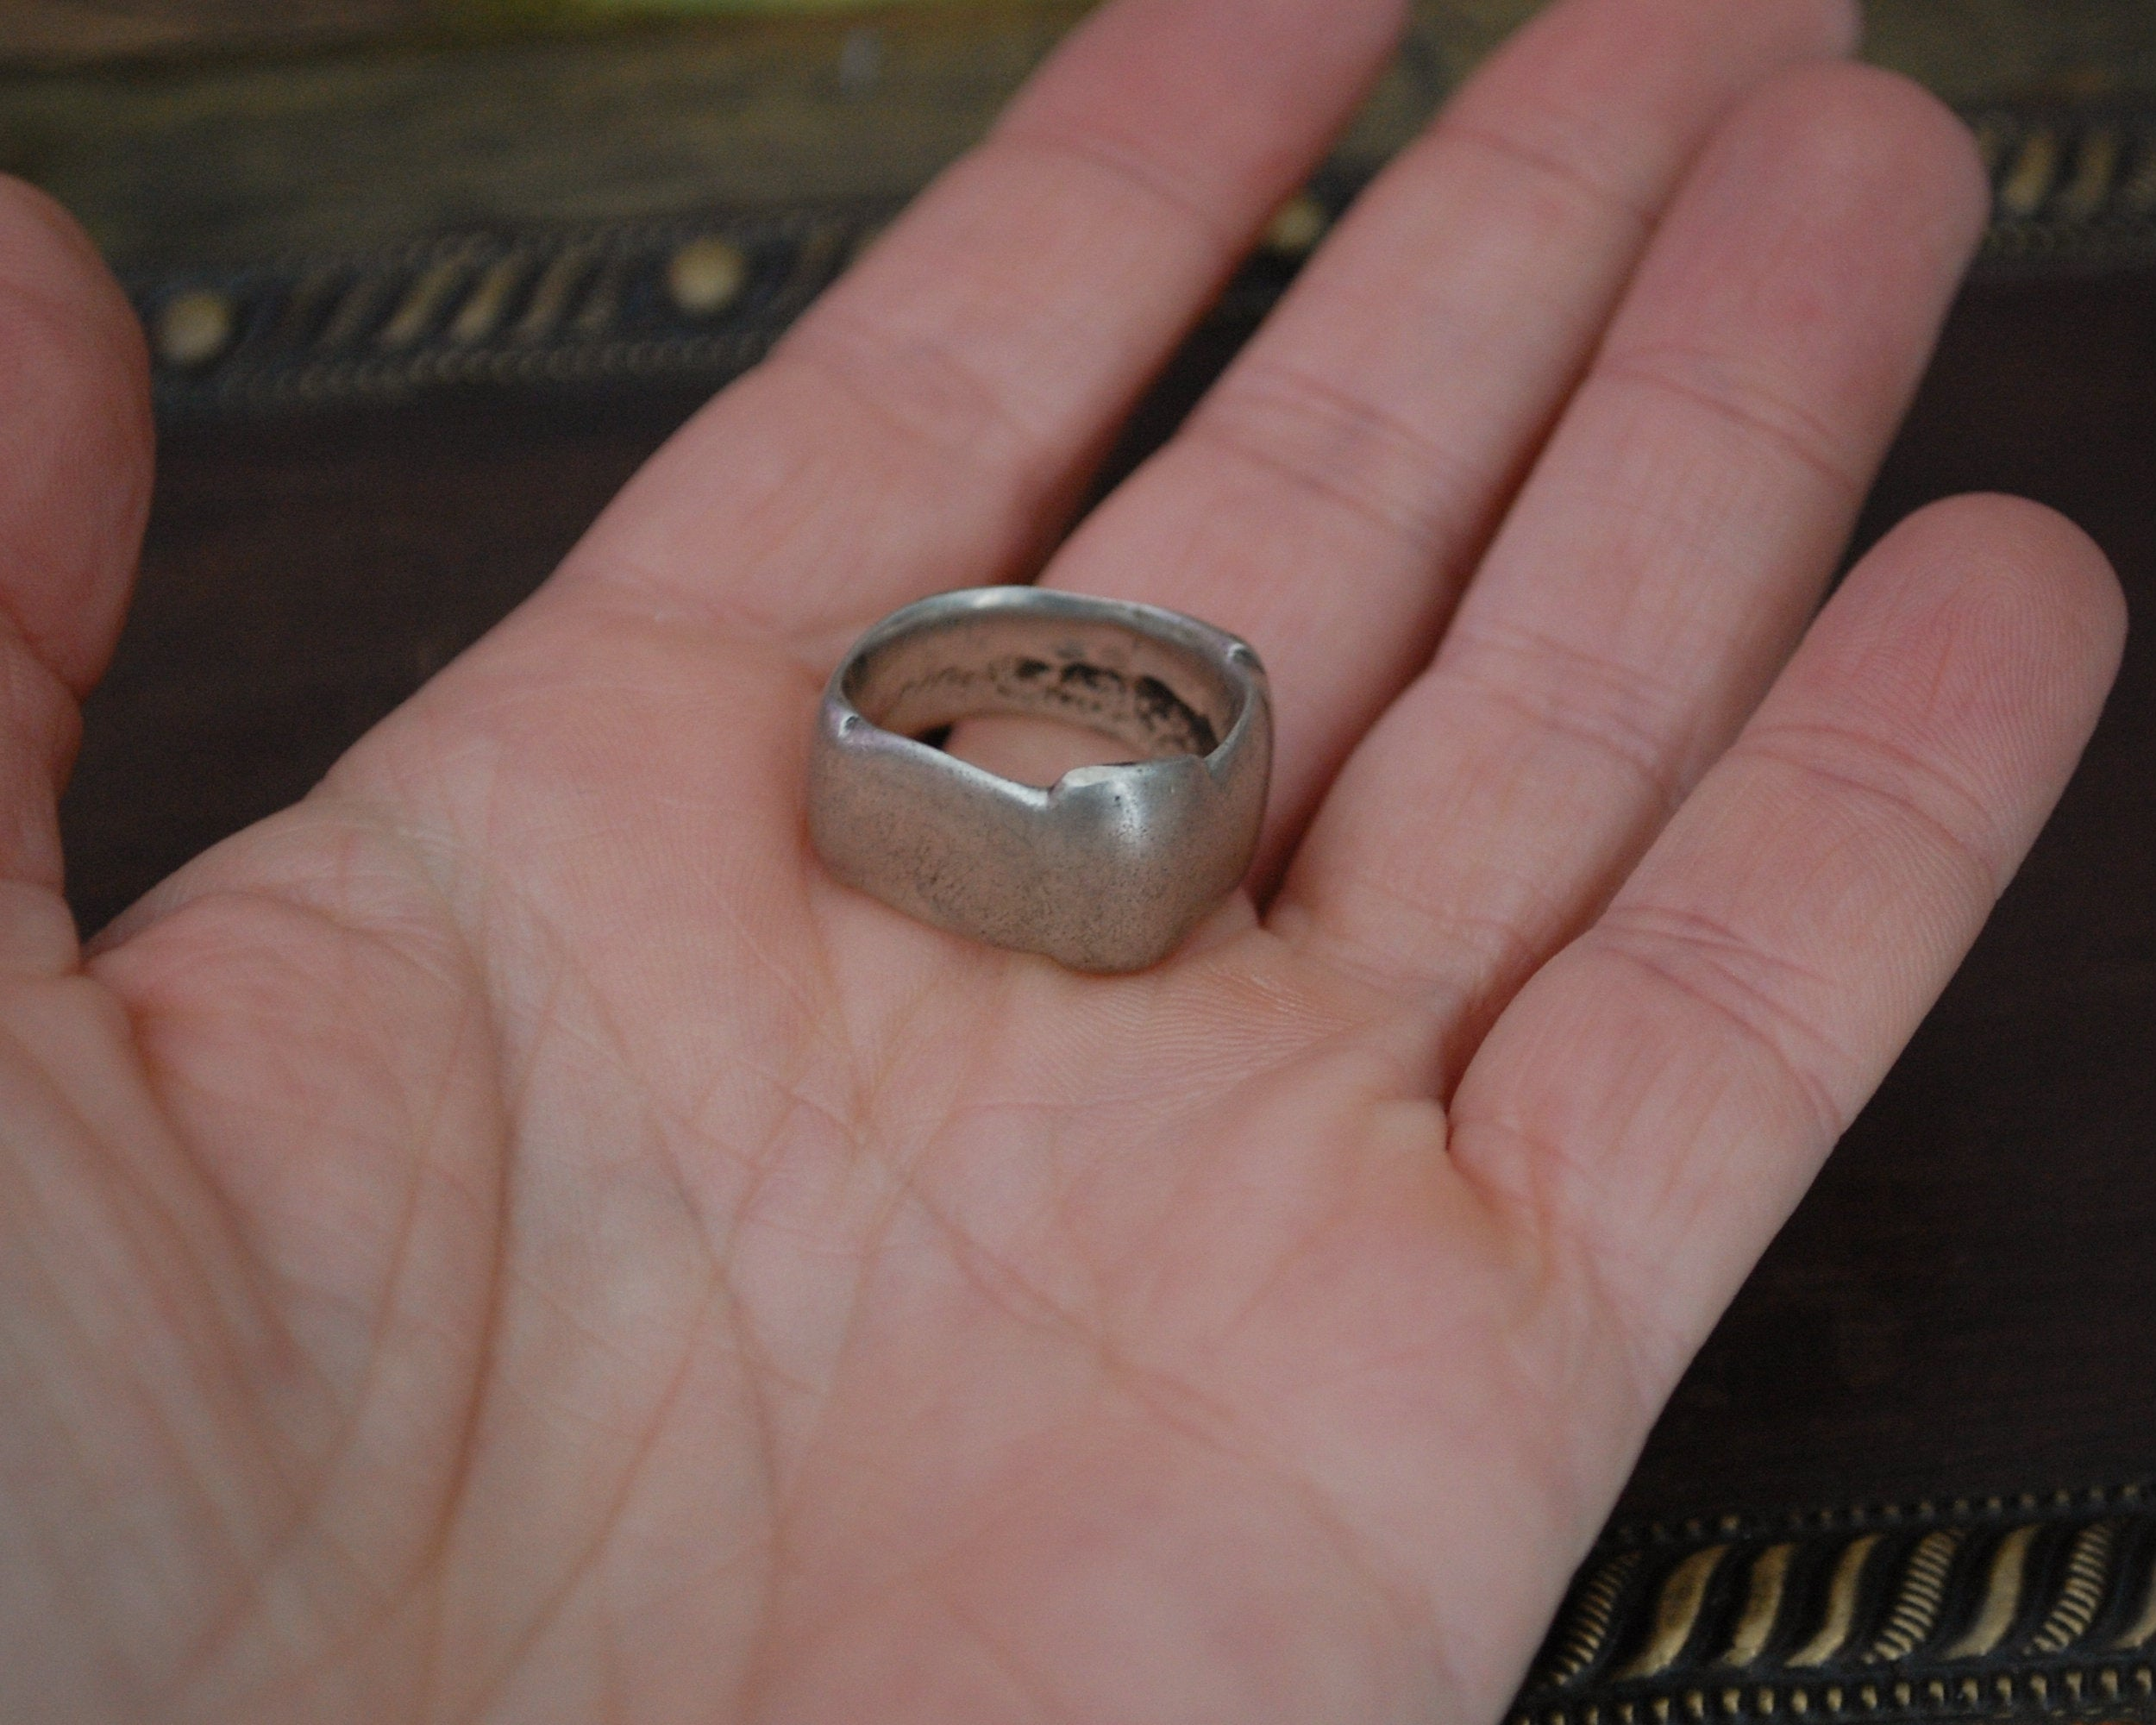 Substantial Old Berber Ring from Morocco - Size 6